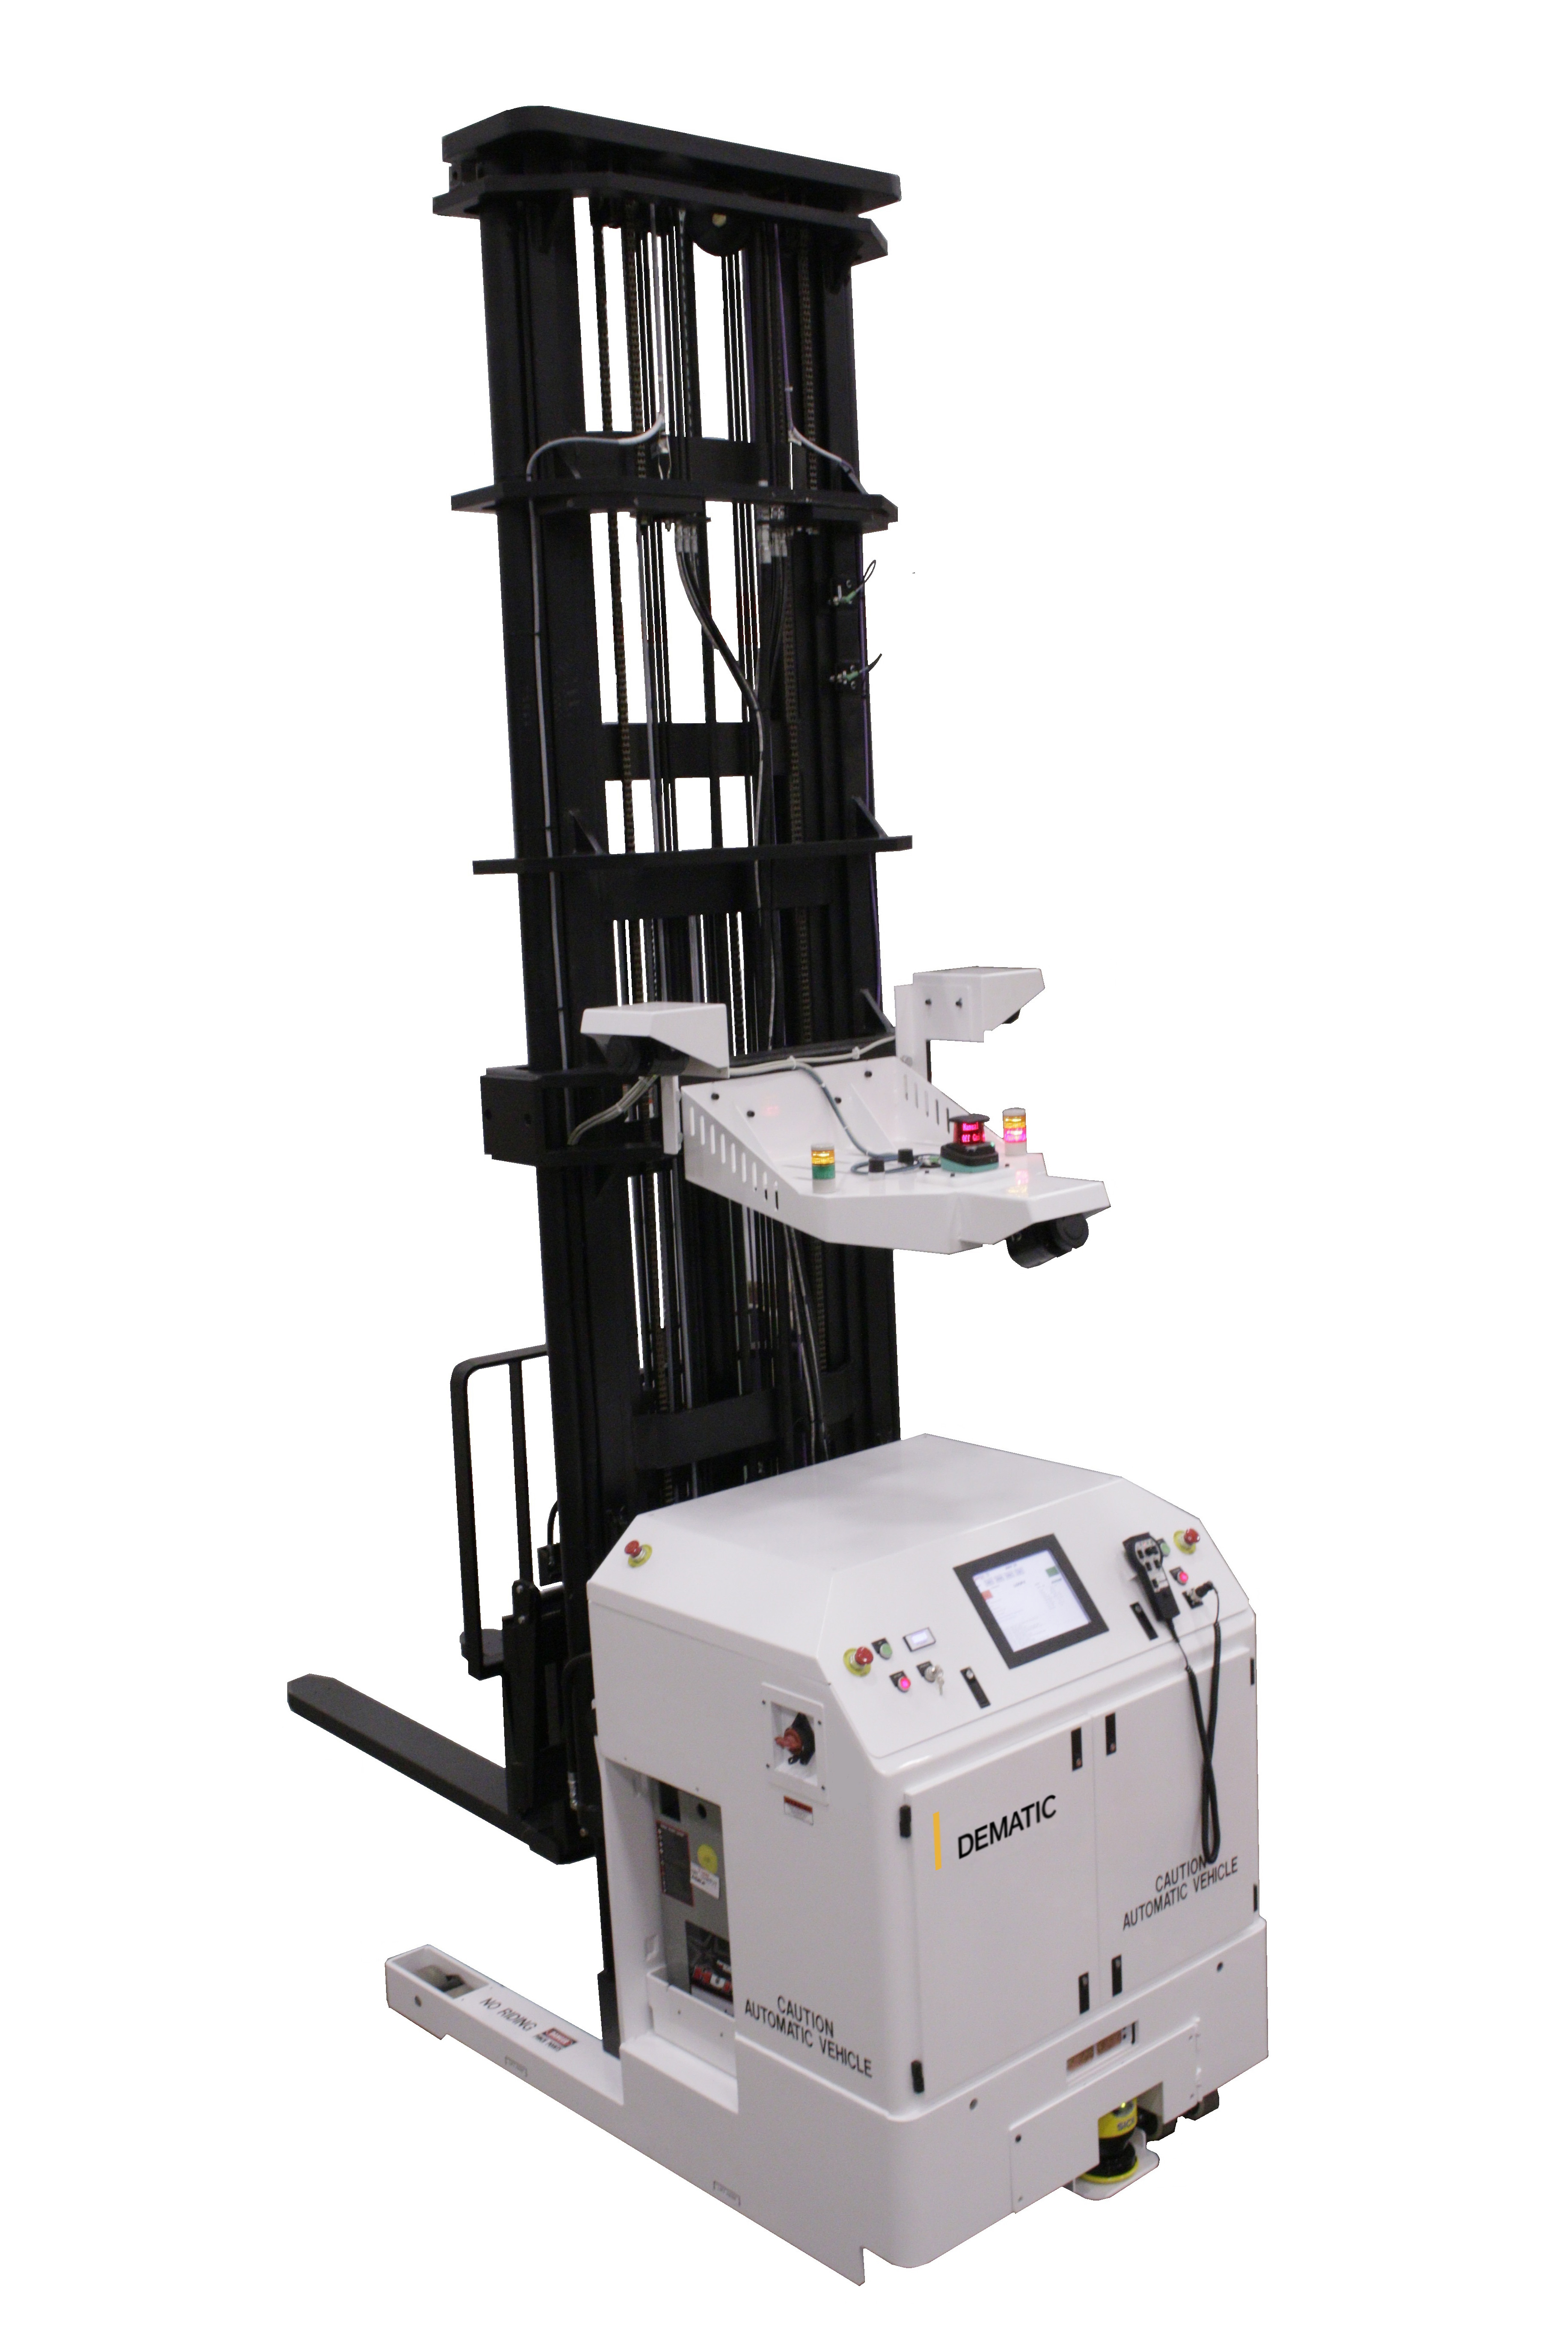 DEMATIC INTRODUCES FREEZER-RATED NARROW AISLE REACH AUTOMATED GUIDED VEHICLE (AGV)